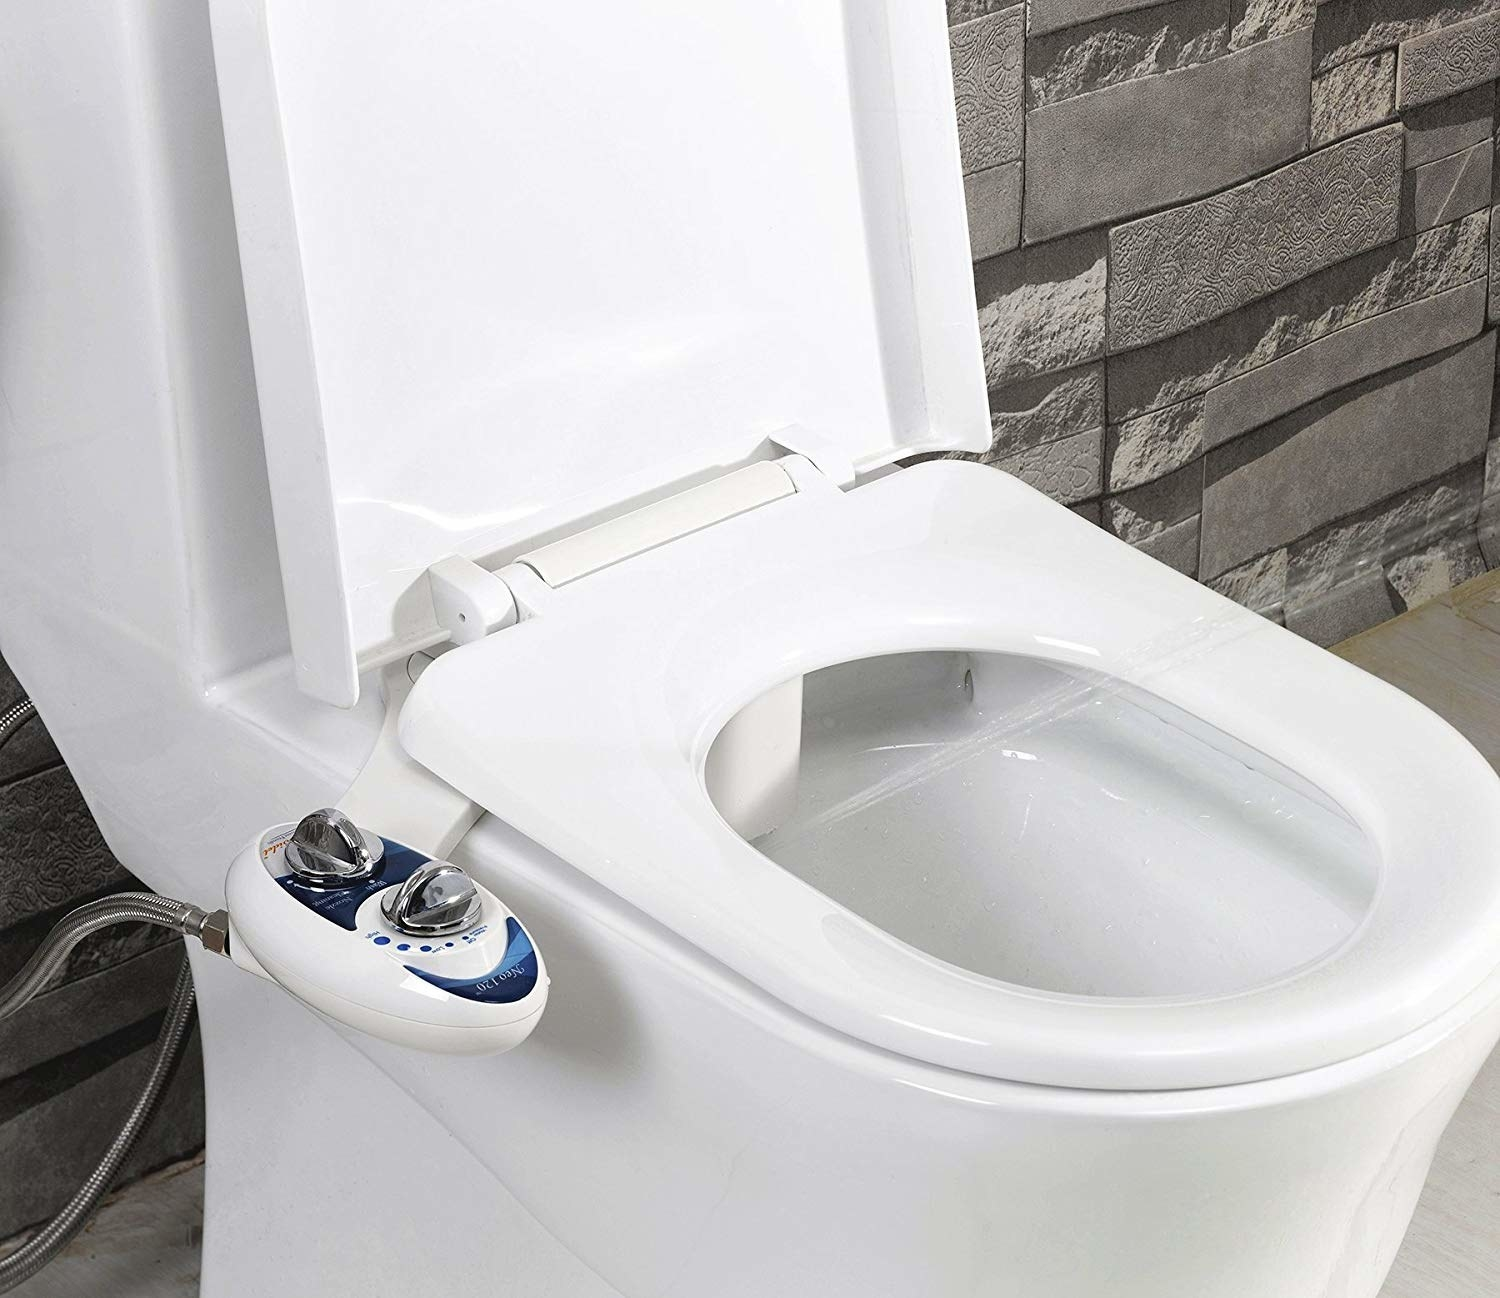 bidet with small dial attached to toilet